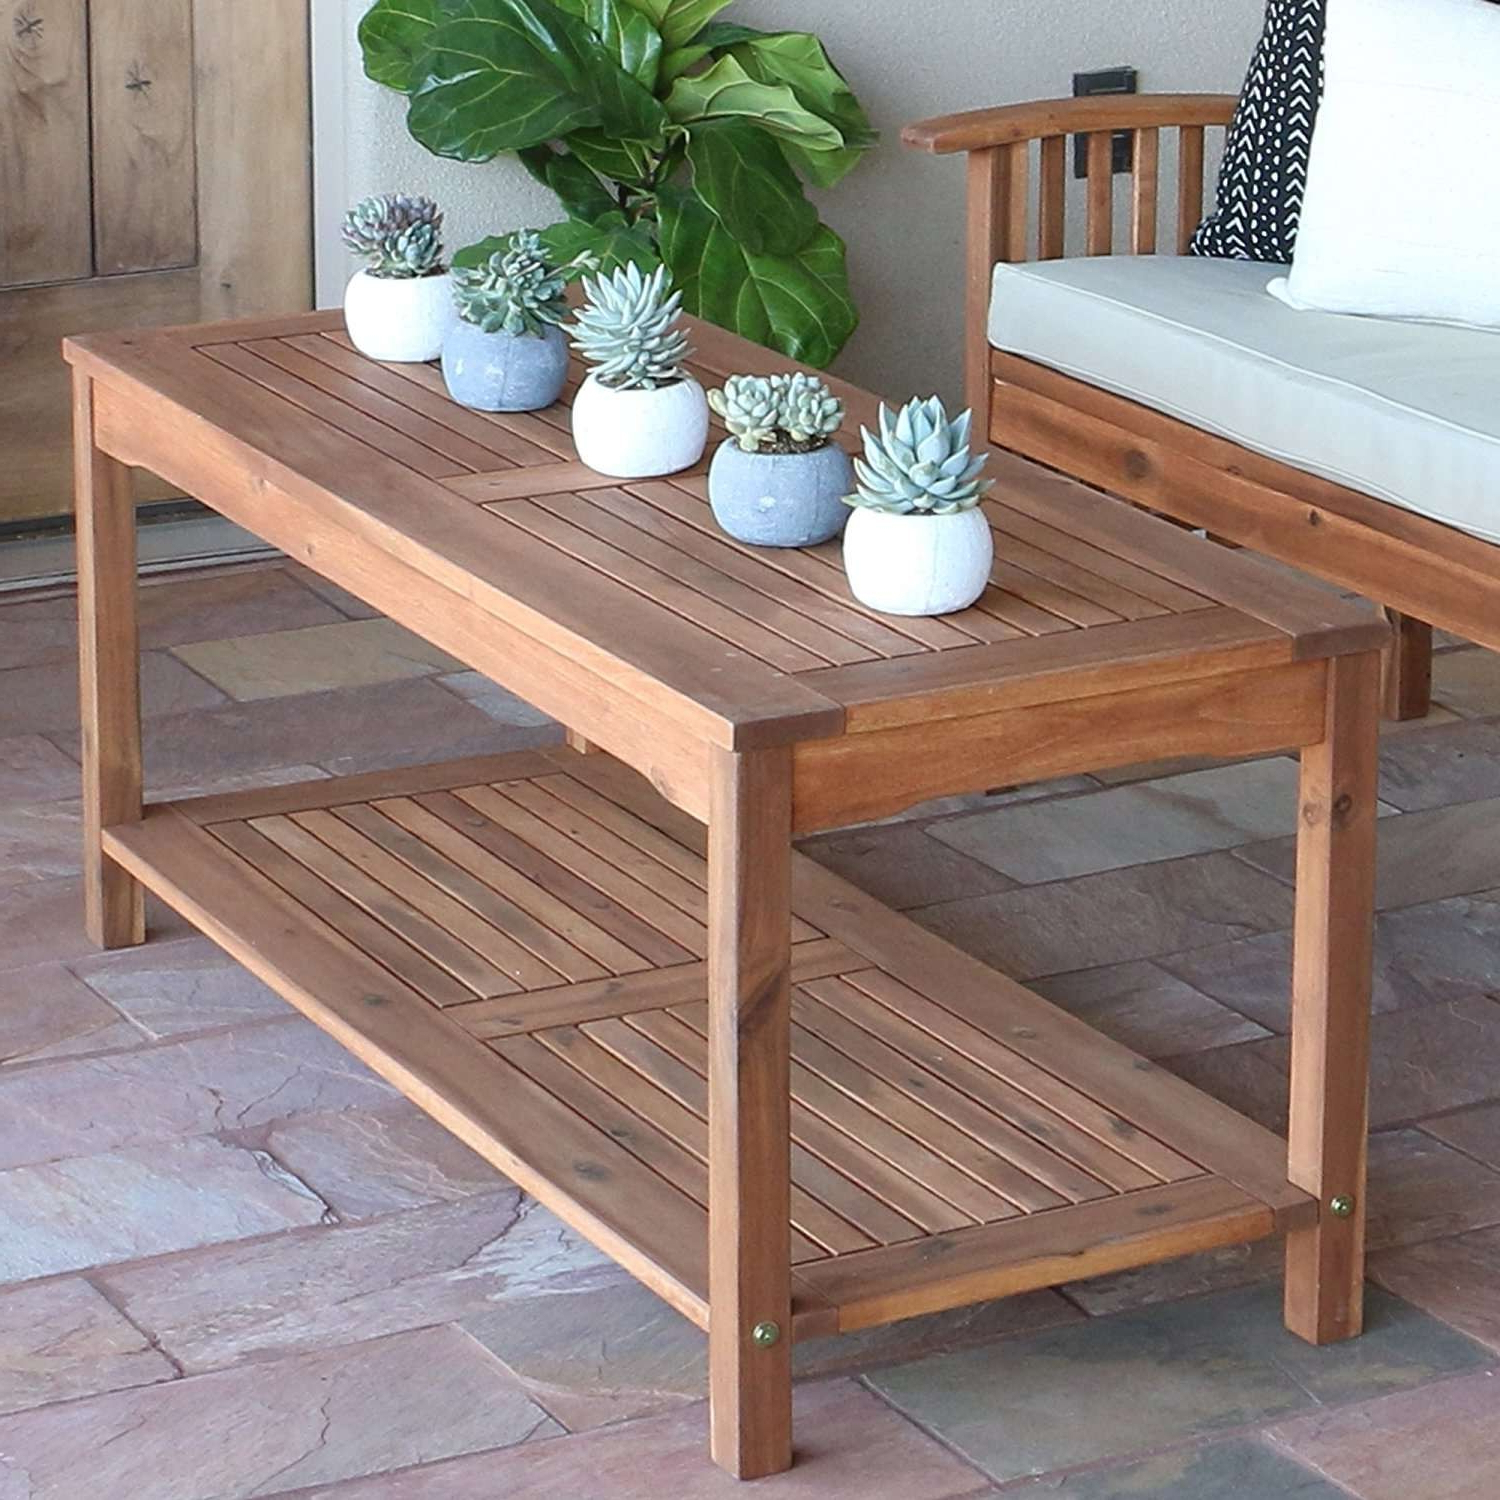 9 Crate And Barrel Concrete Coffee Table Gallery | Coffee Tables Ideas Inside Parsons Concrete Top & Elm Base 48x16 Console Tables (View 5 of 20)